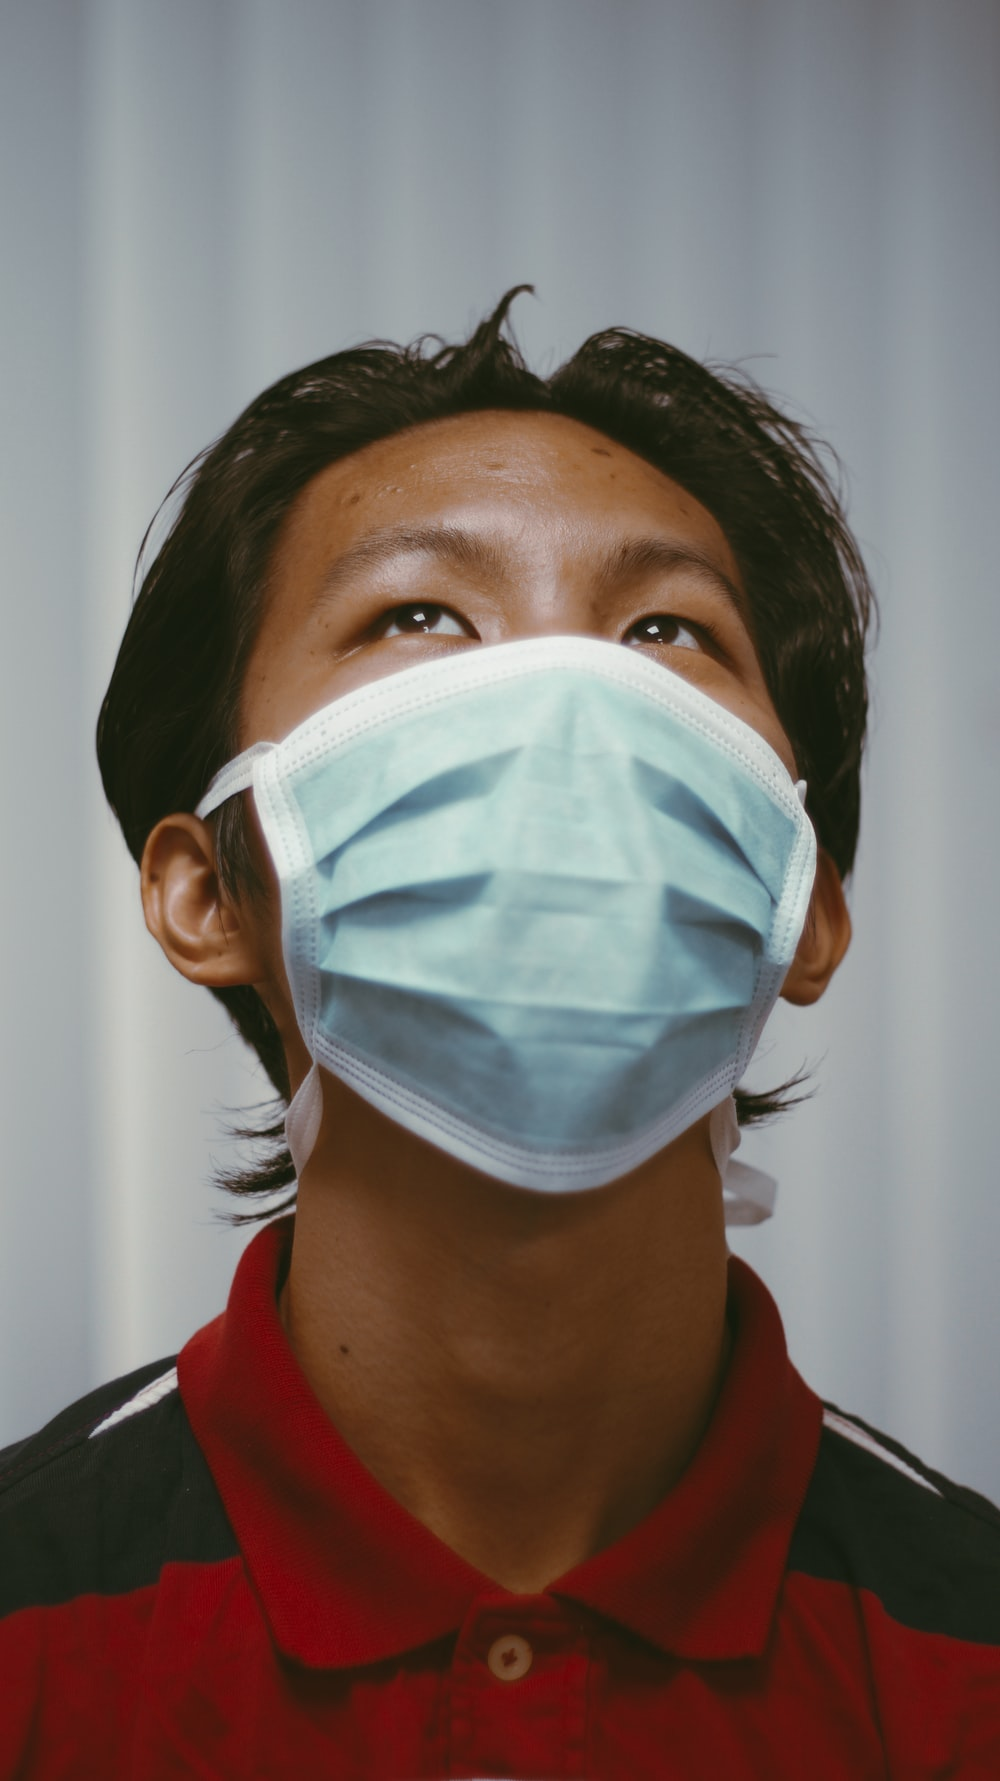 Doctor Mask Pictures | Download Free Images on Unsplash